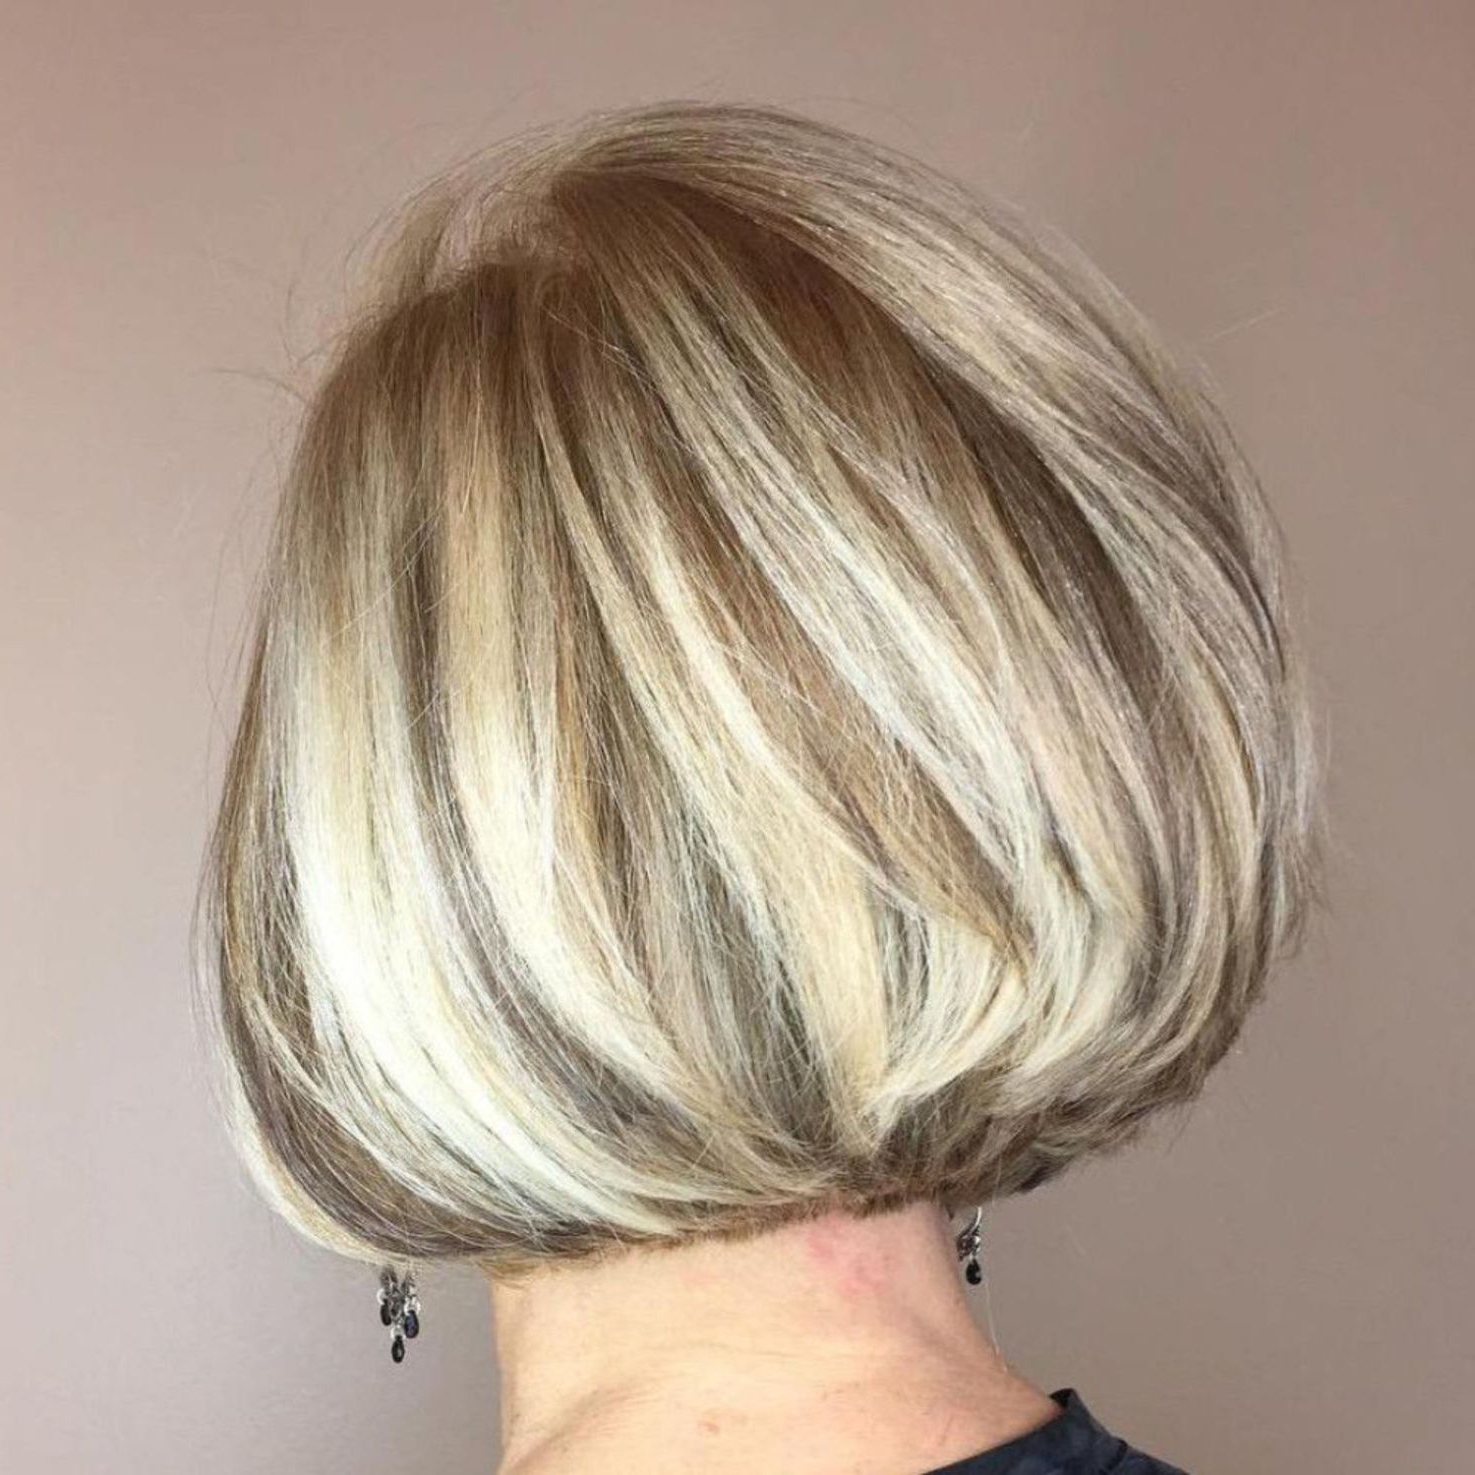 80 Best Modern Hairstyles And Haircuts For Women Over 50 Within Modern And Stylish Blonde Bob Haircuts (View 8 of 20)